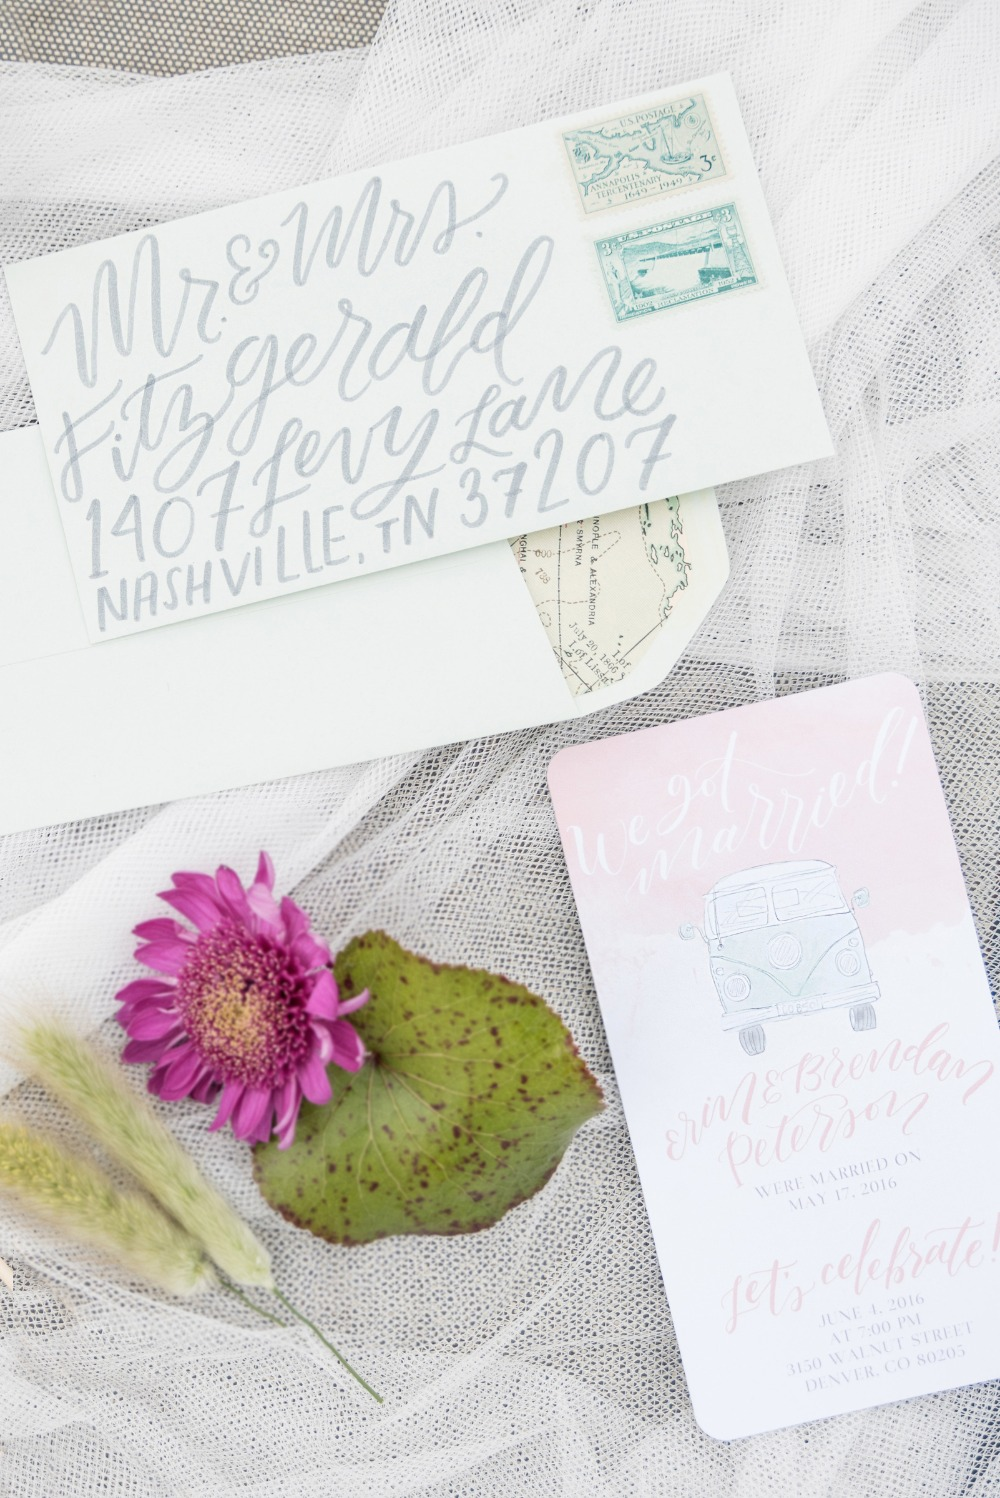 VW Bus inspired wedding invitation